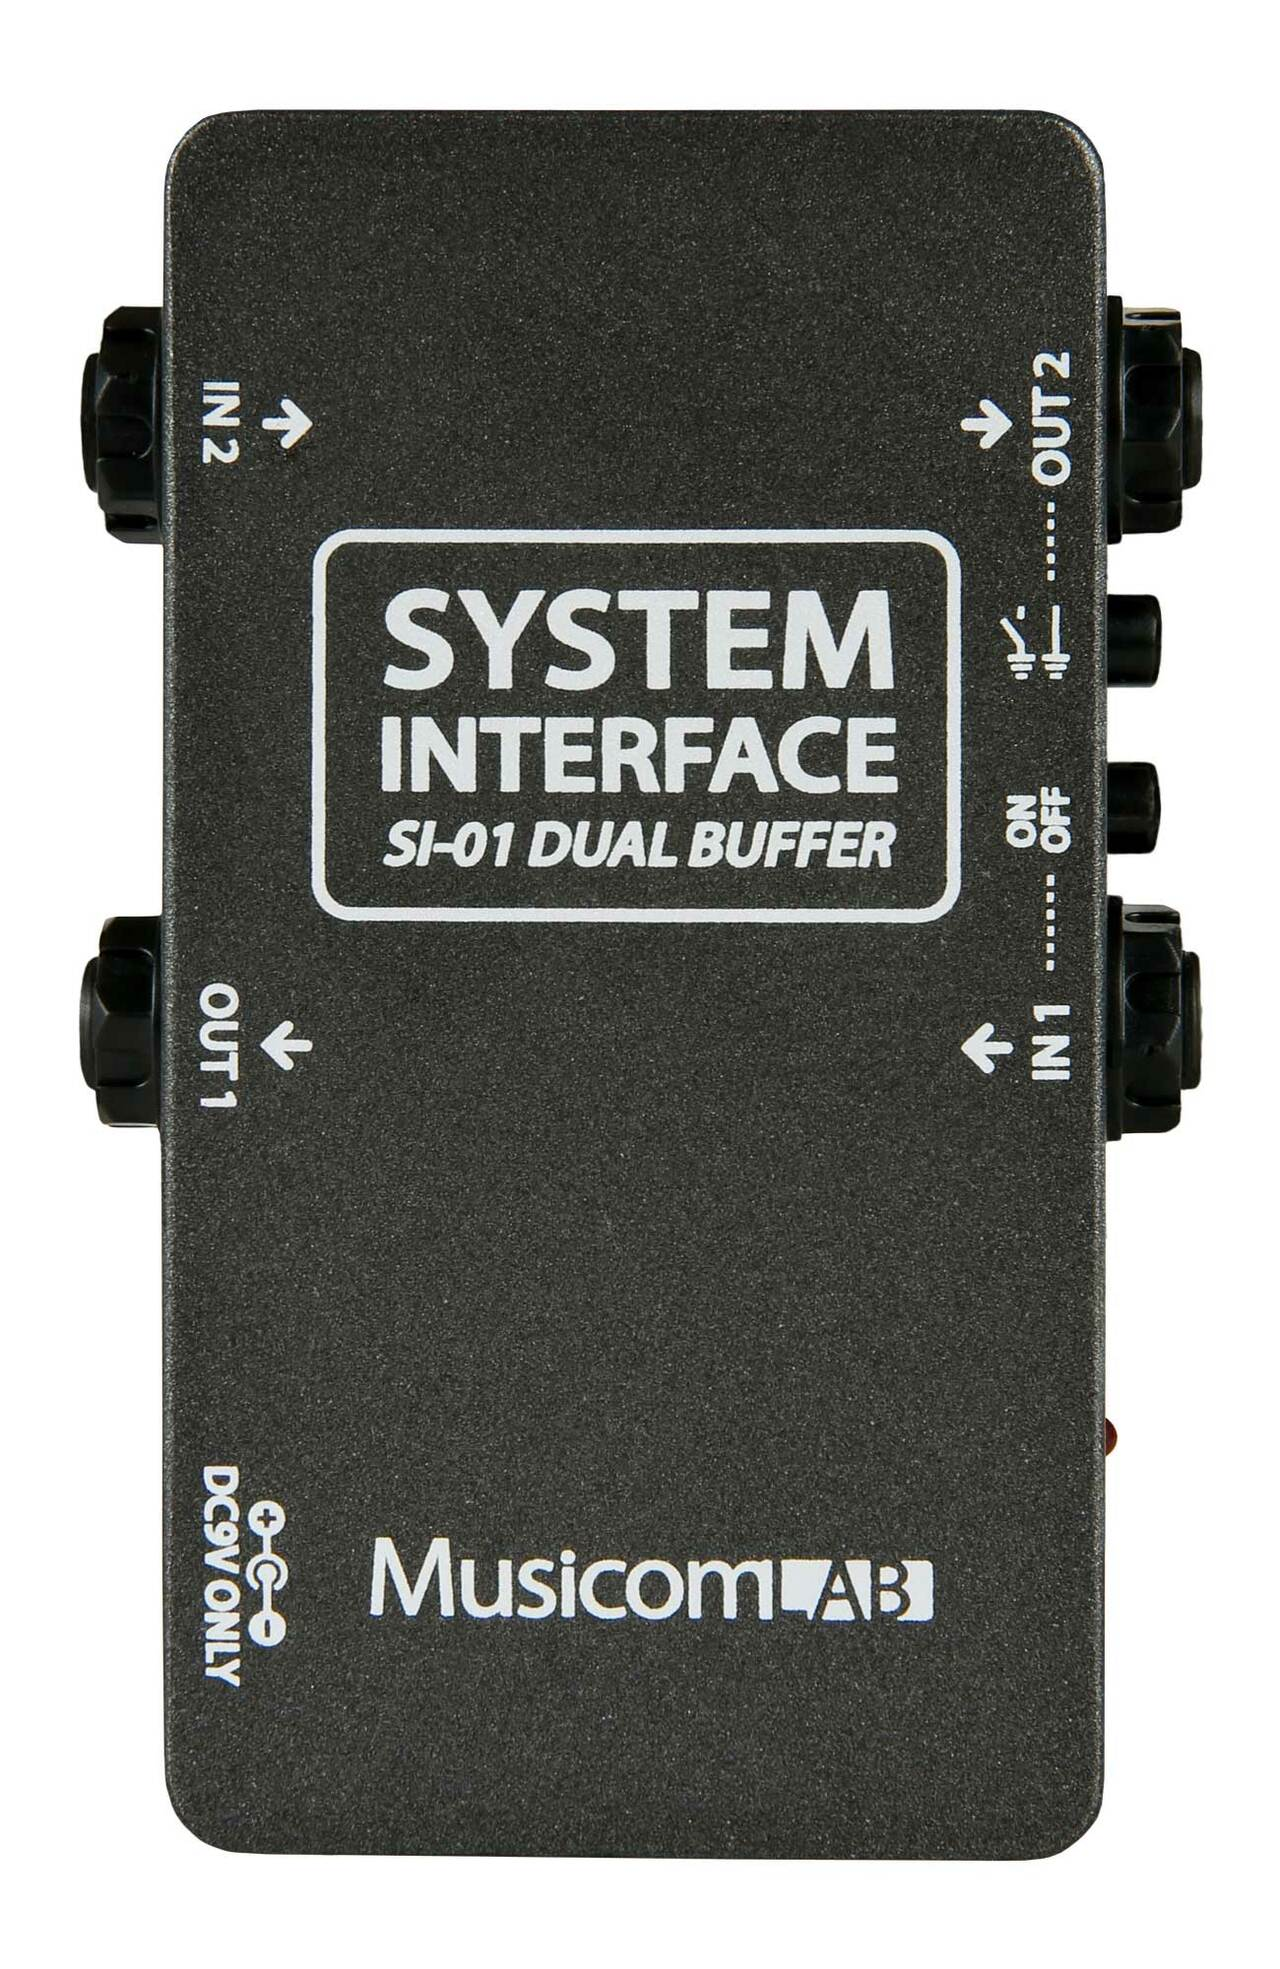 Musicom Lab System Interface